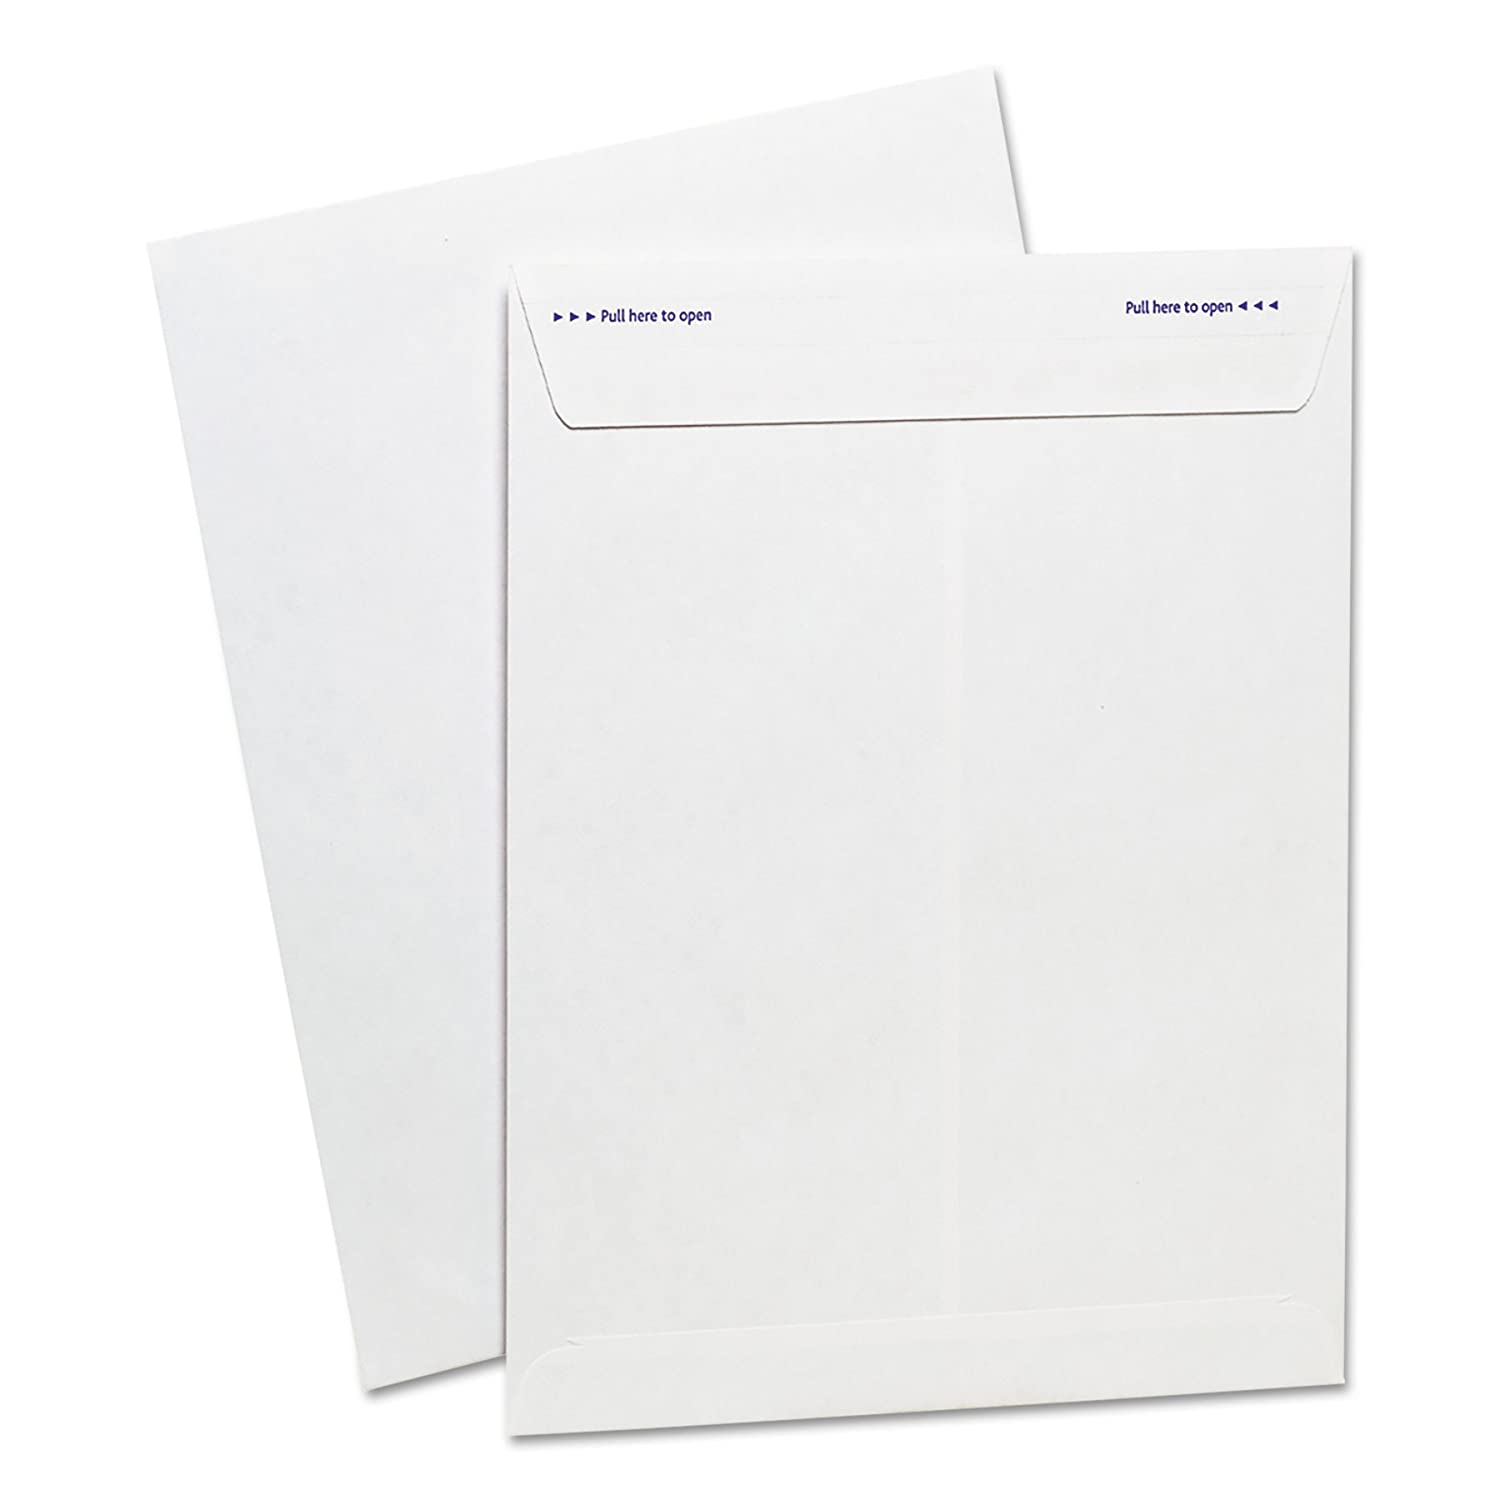 Peel /& Seal Adhesive Ampad Fastrip Security Catalog Envelope 73127 Tear-Away Quick-Open Strip Security Tint 100 Per Box White 9 Inch x 12 Inch